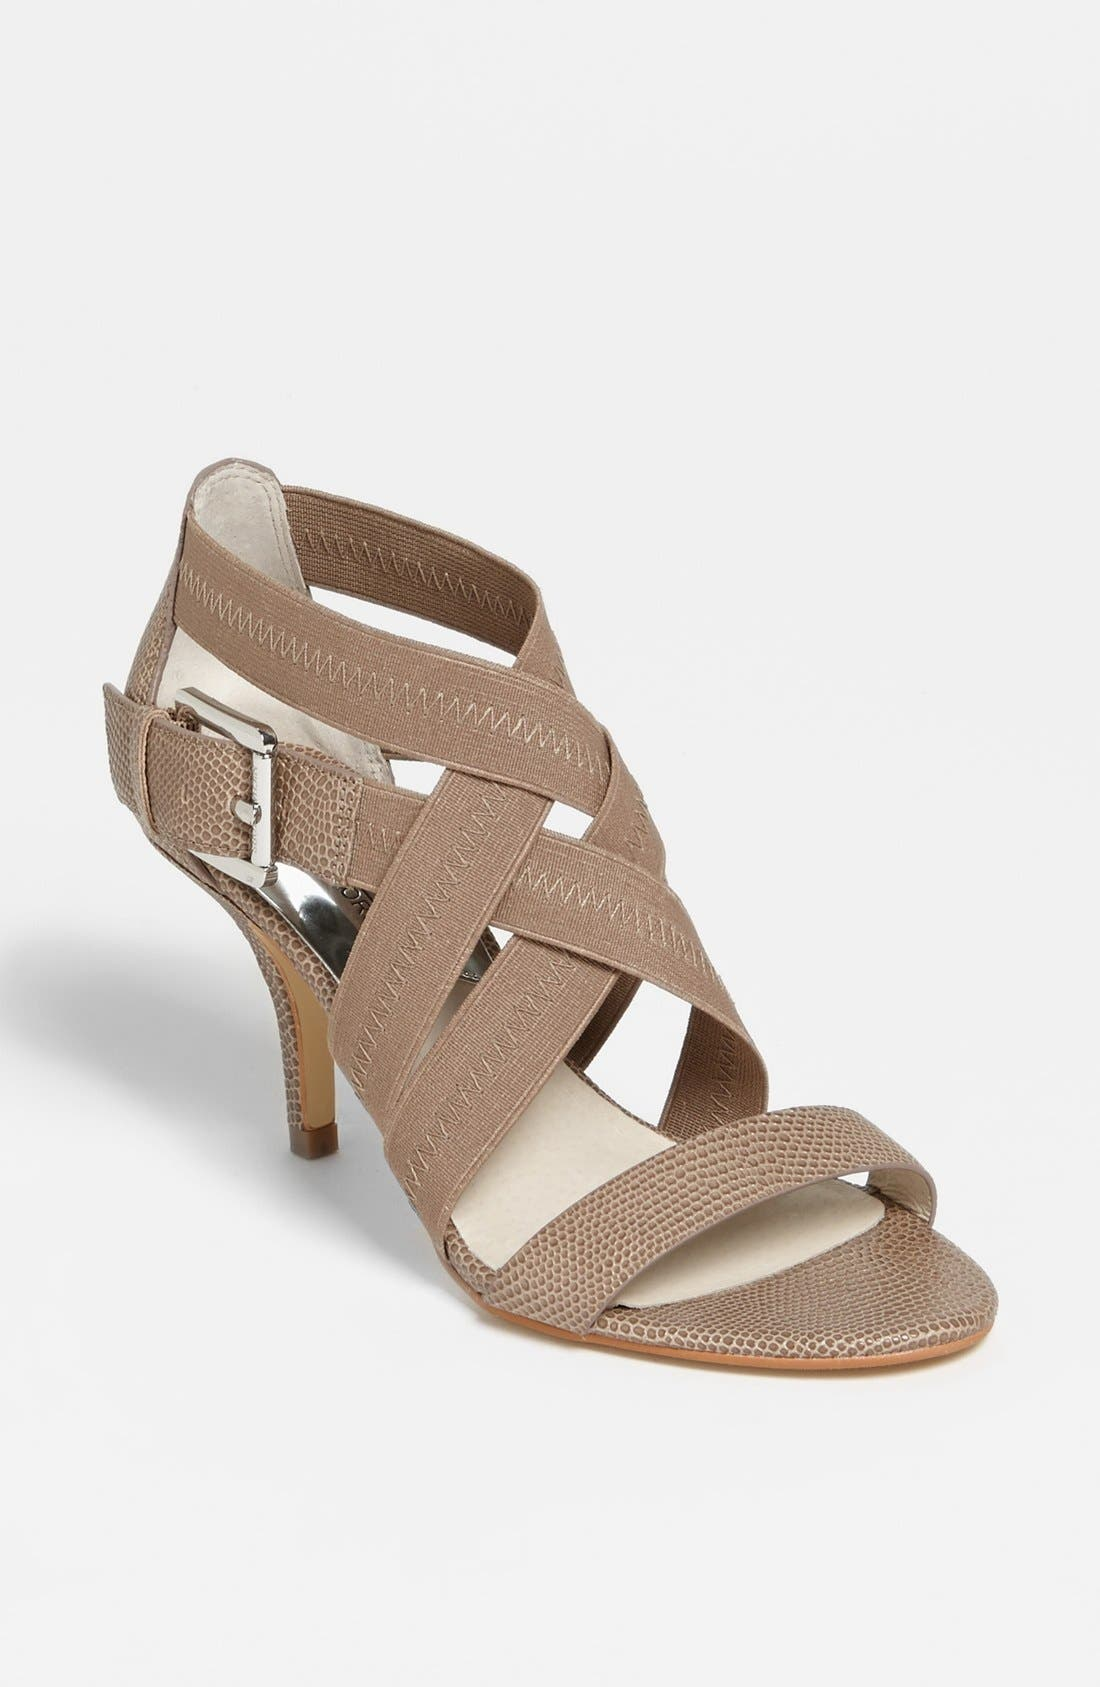 Alternate Image 1 Selected - MICHAEL Michael Kors 'Carina' Sandal